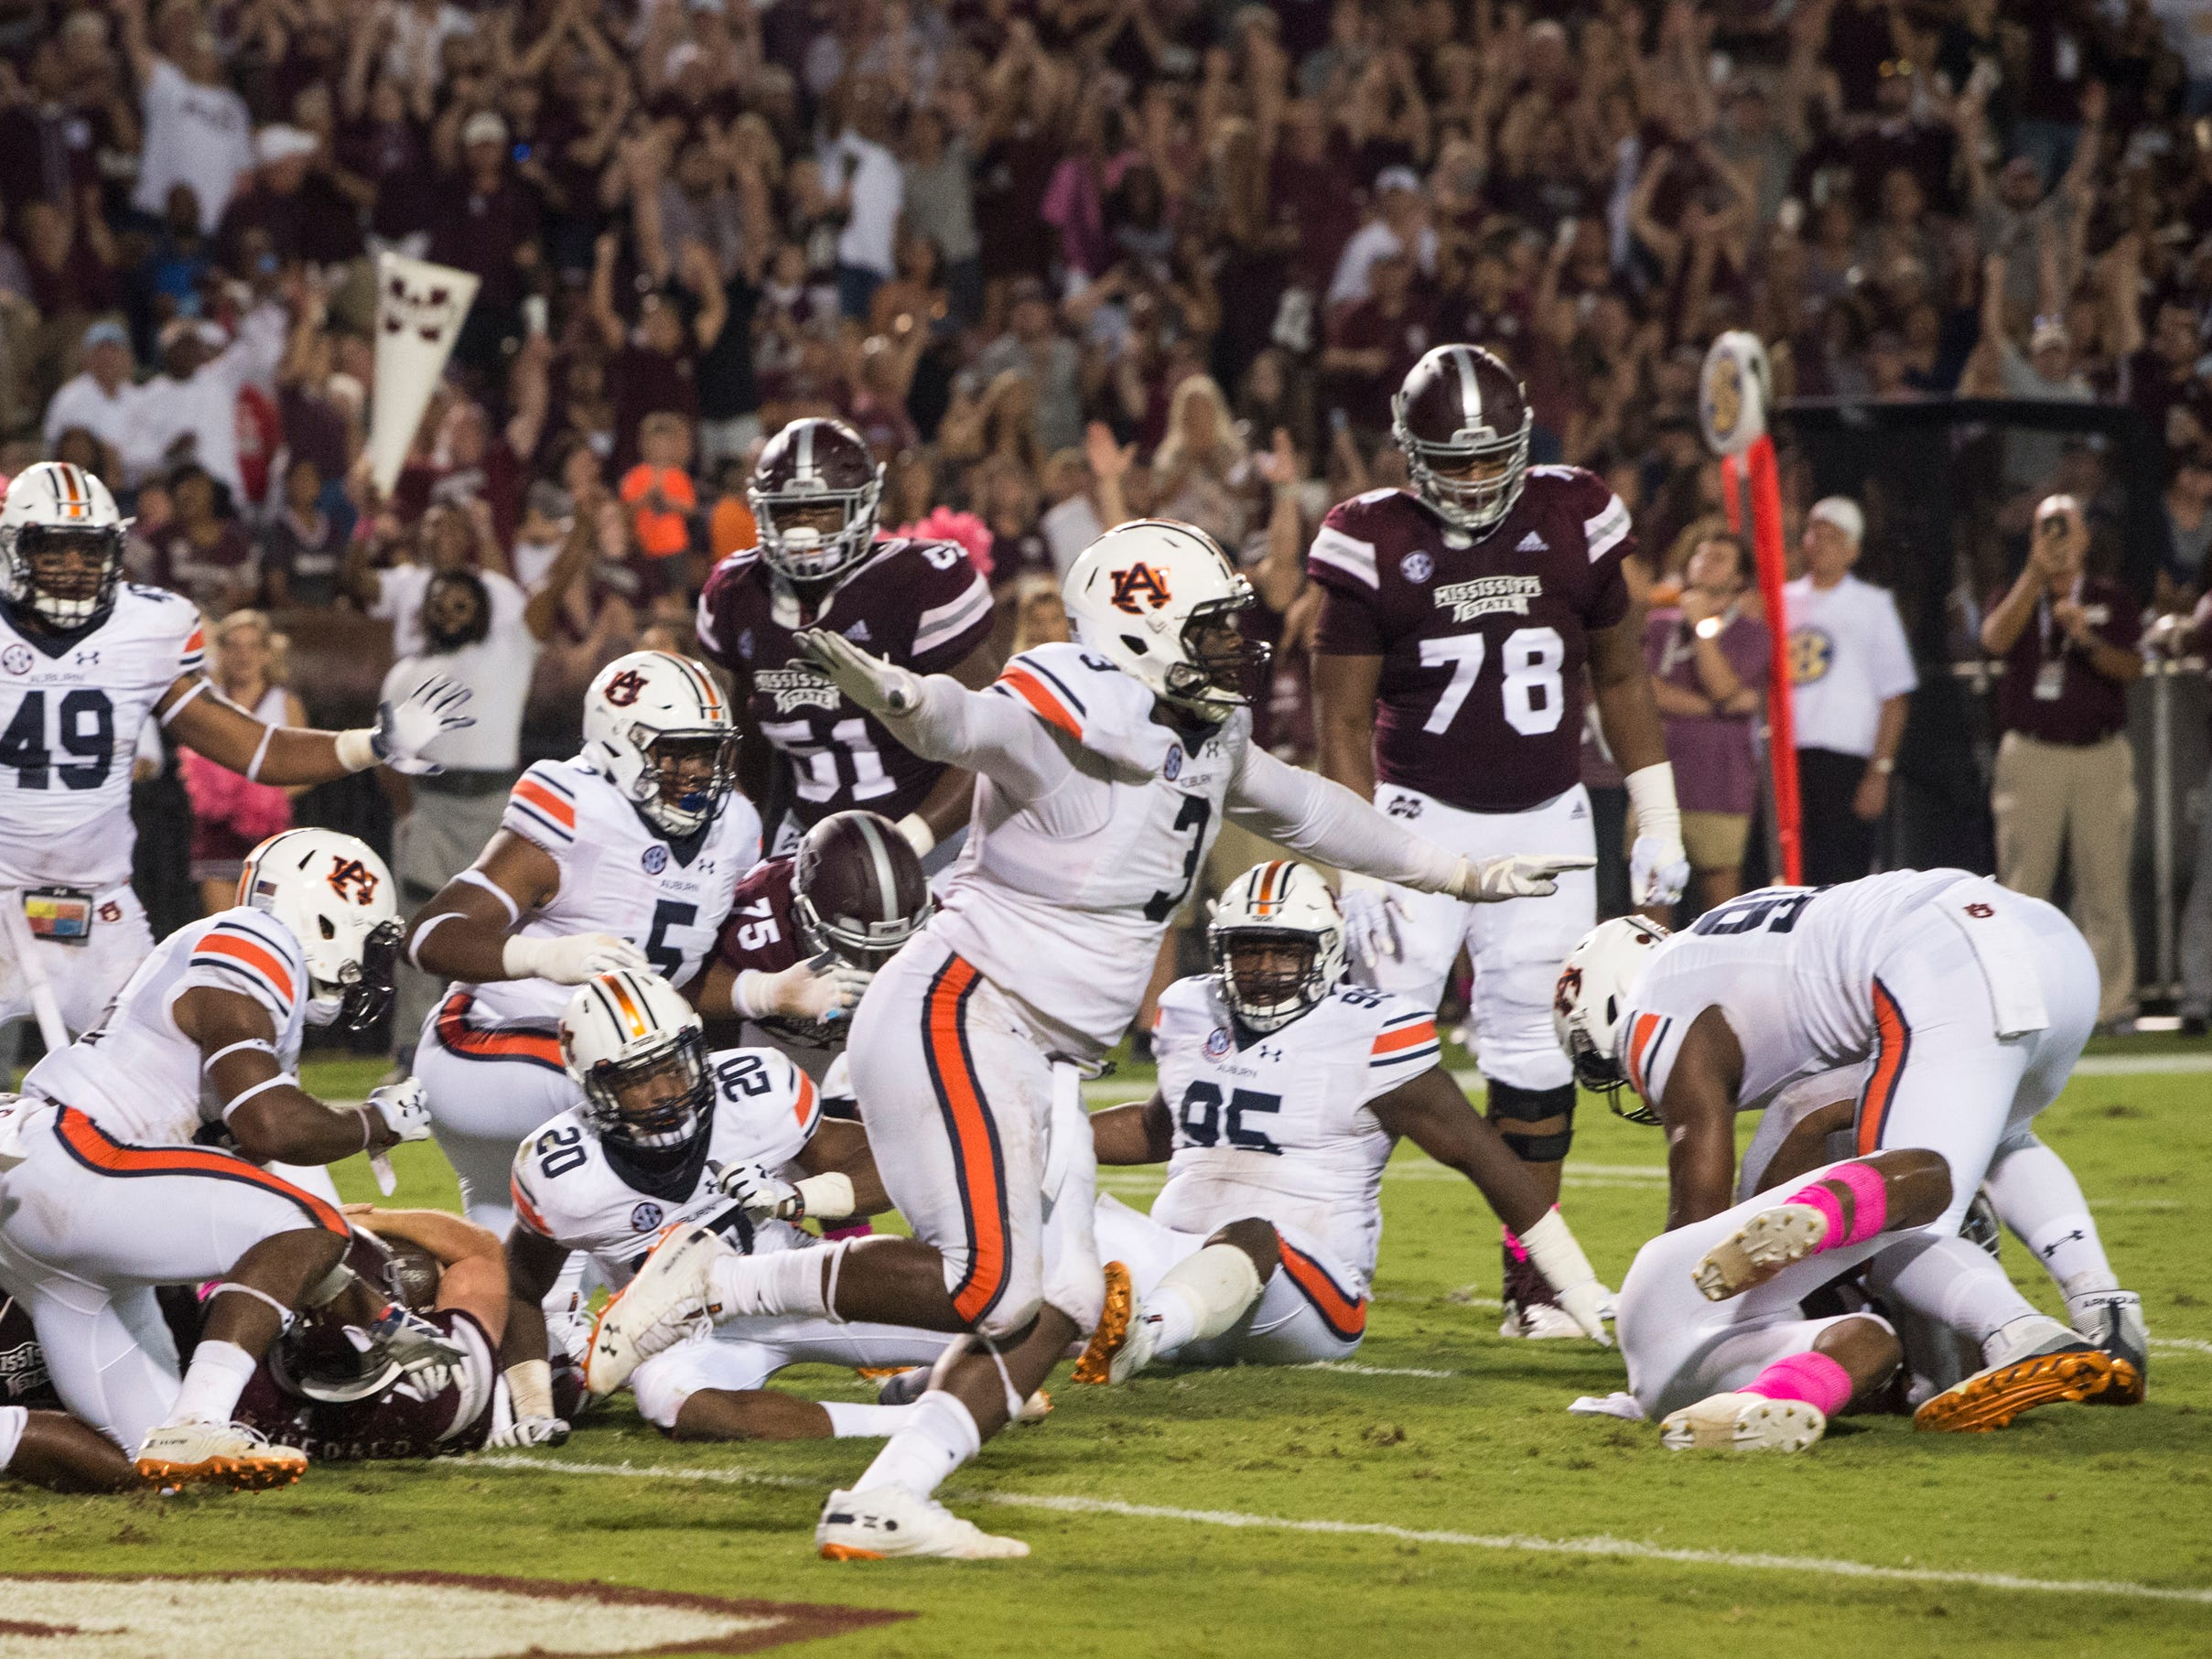 Auburn's Marlon Davidson (3) reacts thinking Auburn defense stopped Mississippi State on the goal line at Davis Wade Stadium in Starkville, Miss., on Saturday, Oct. 6, 2018. Mississippi State defeated Auburn 23-9.